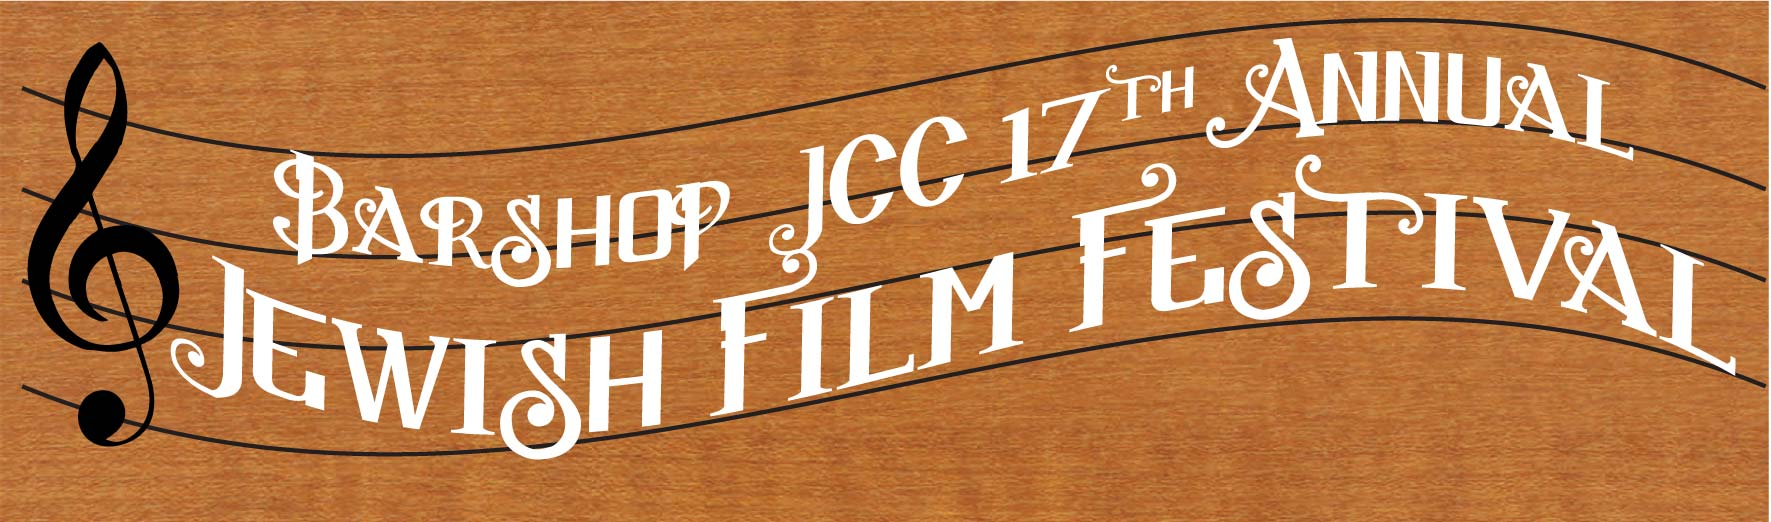 Find tickets from Barshop JCC Jewish Film Festival